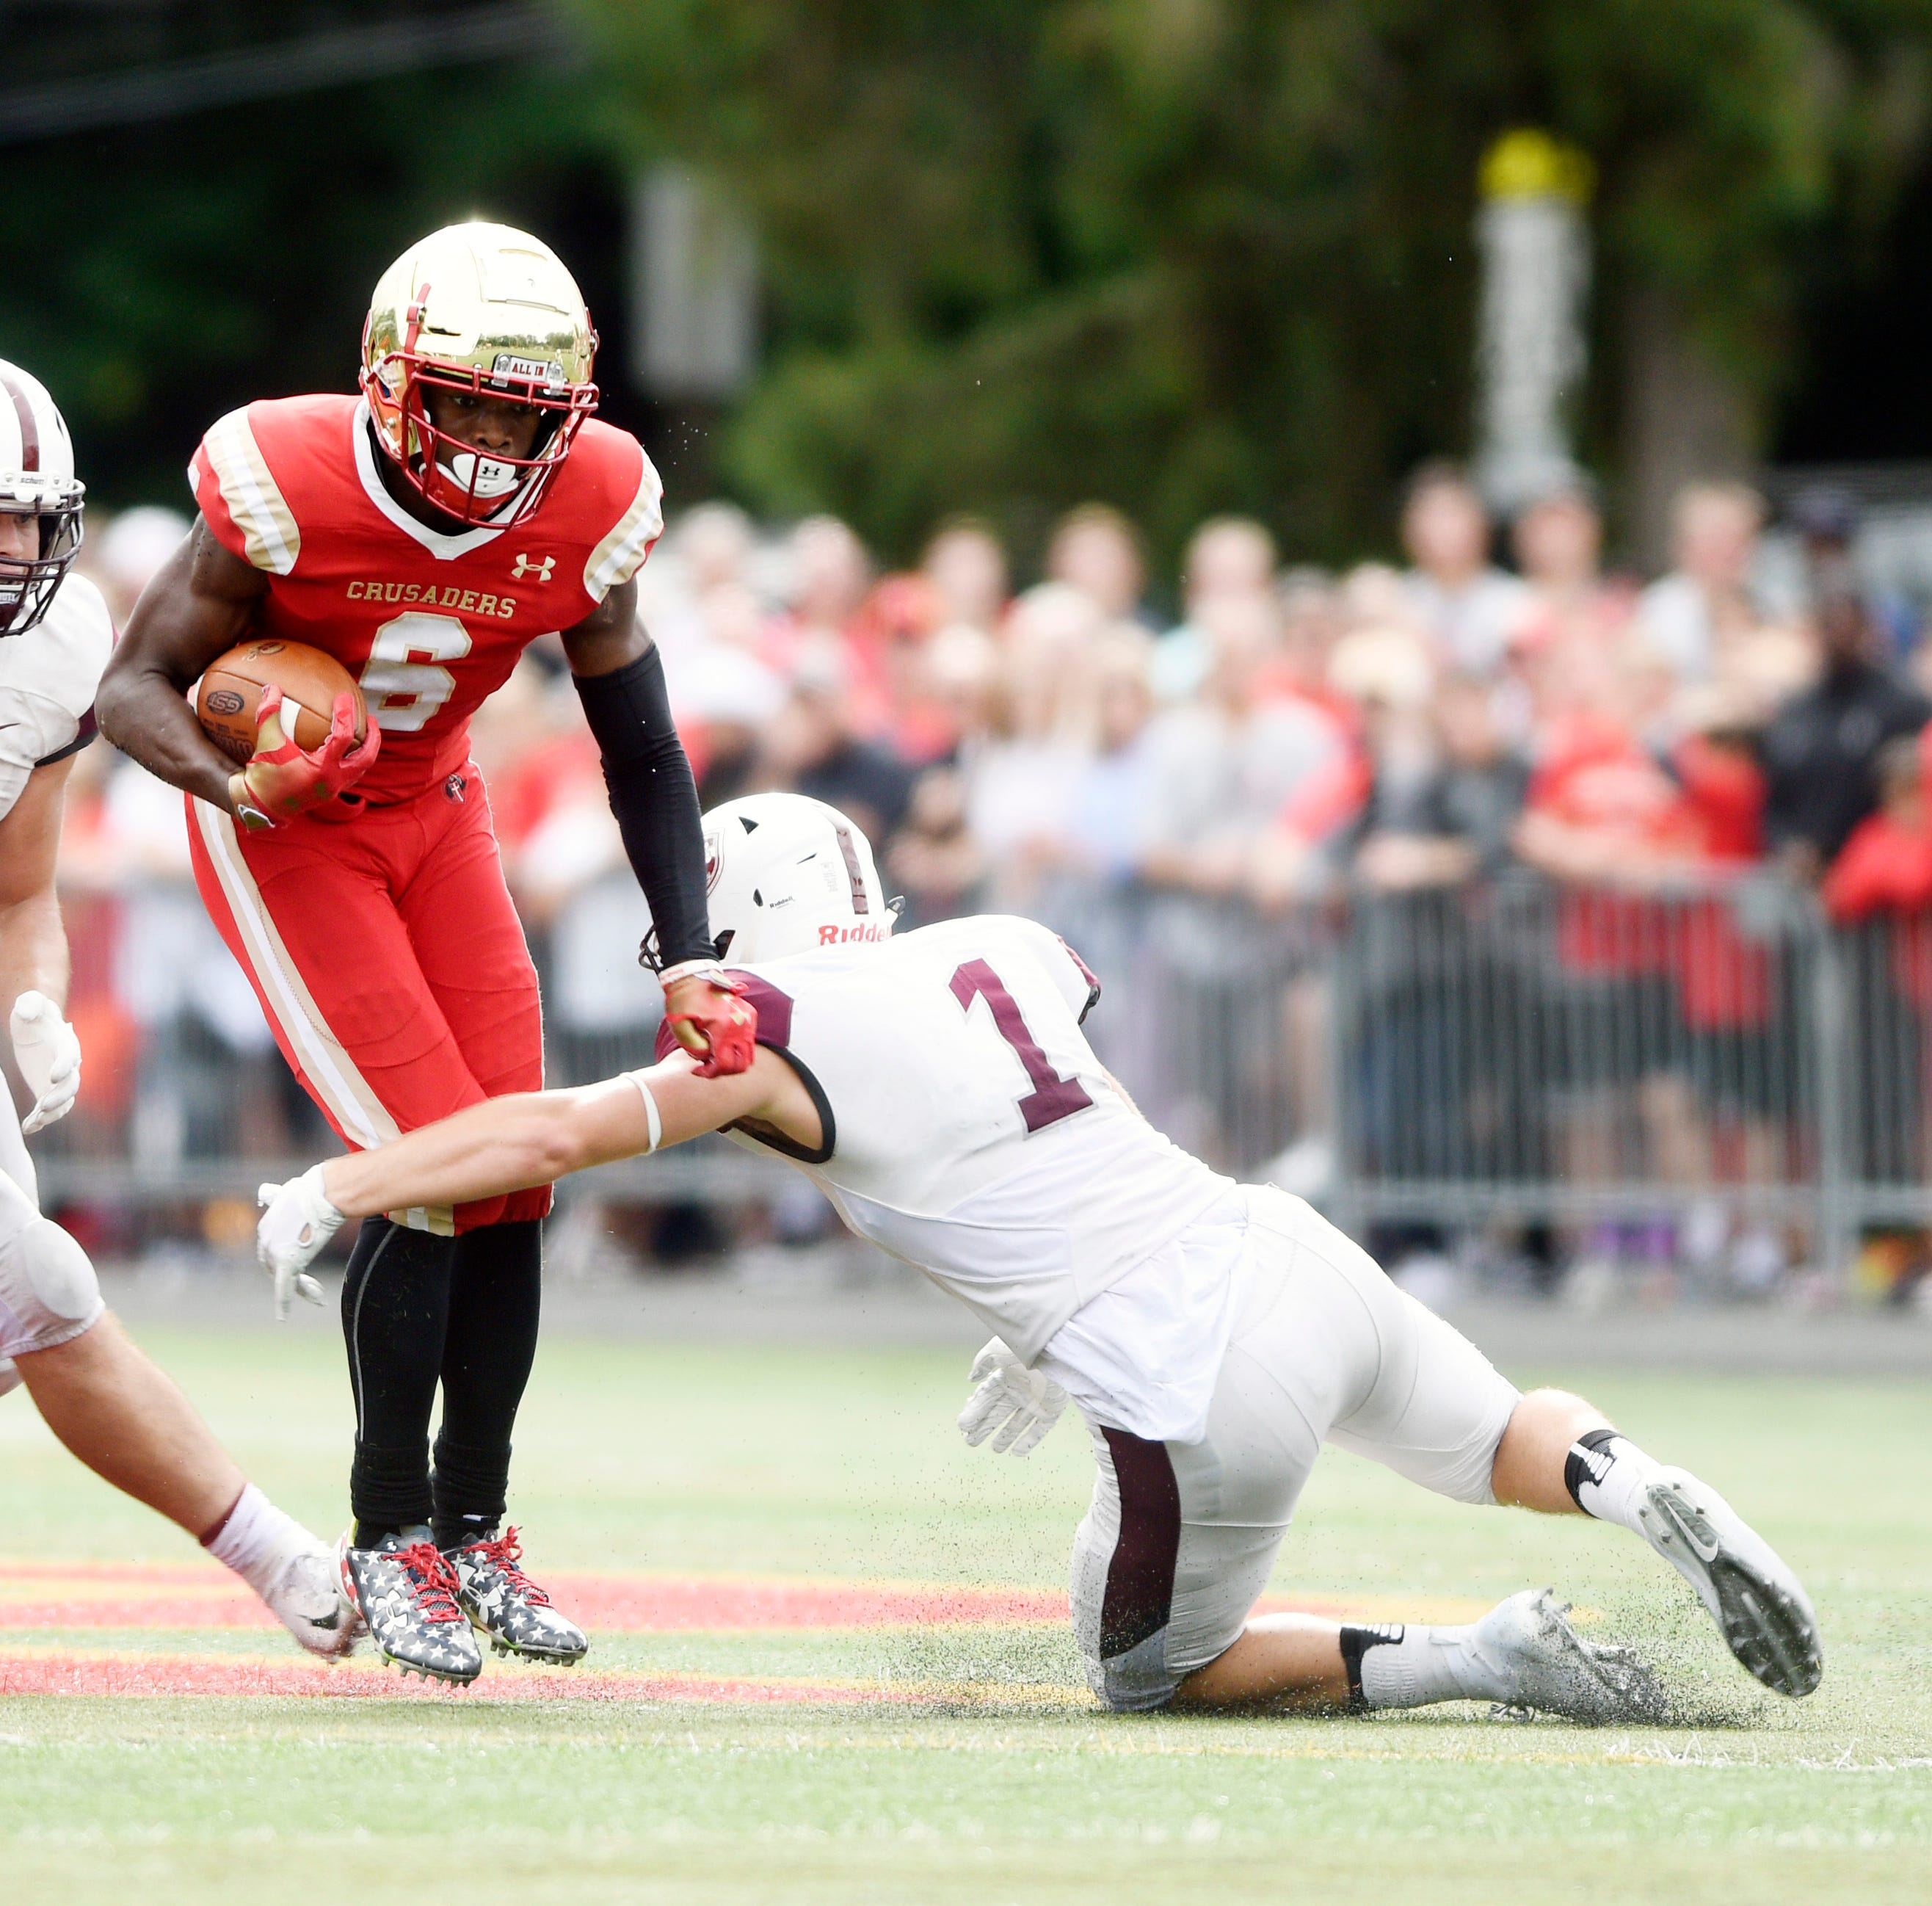 Bergen Catholic 35, Don Bosco 17: The big plays from the Crusaders' playoff win